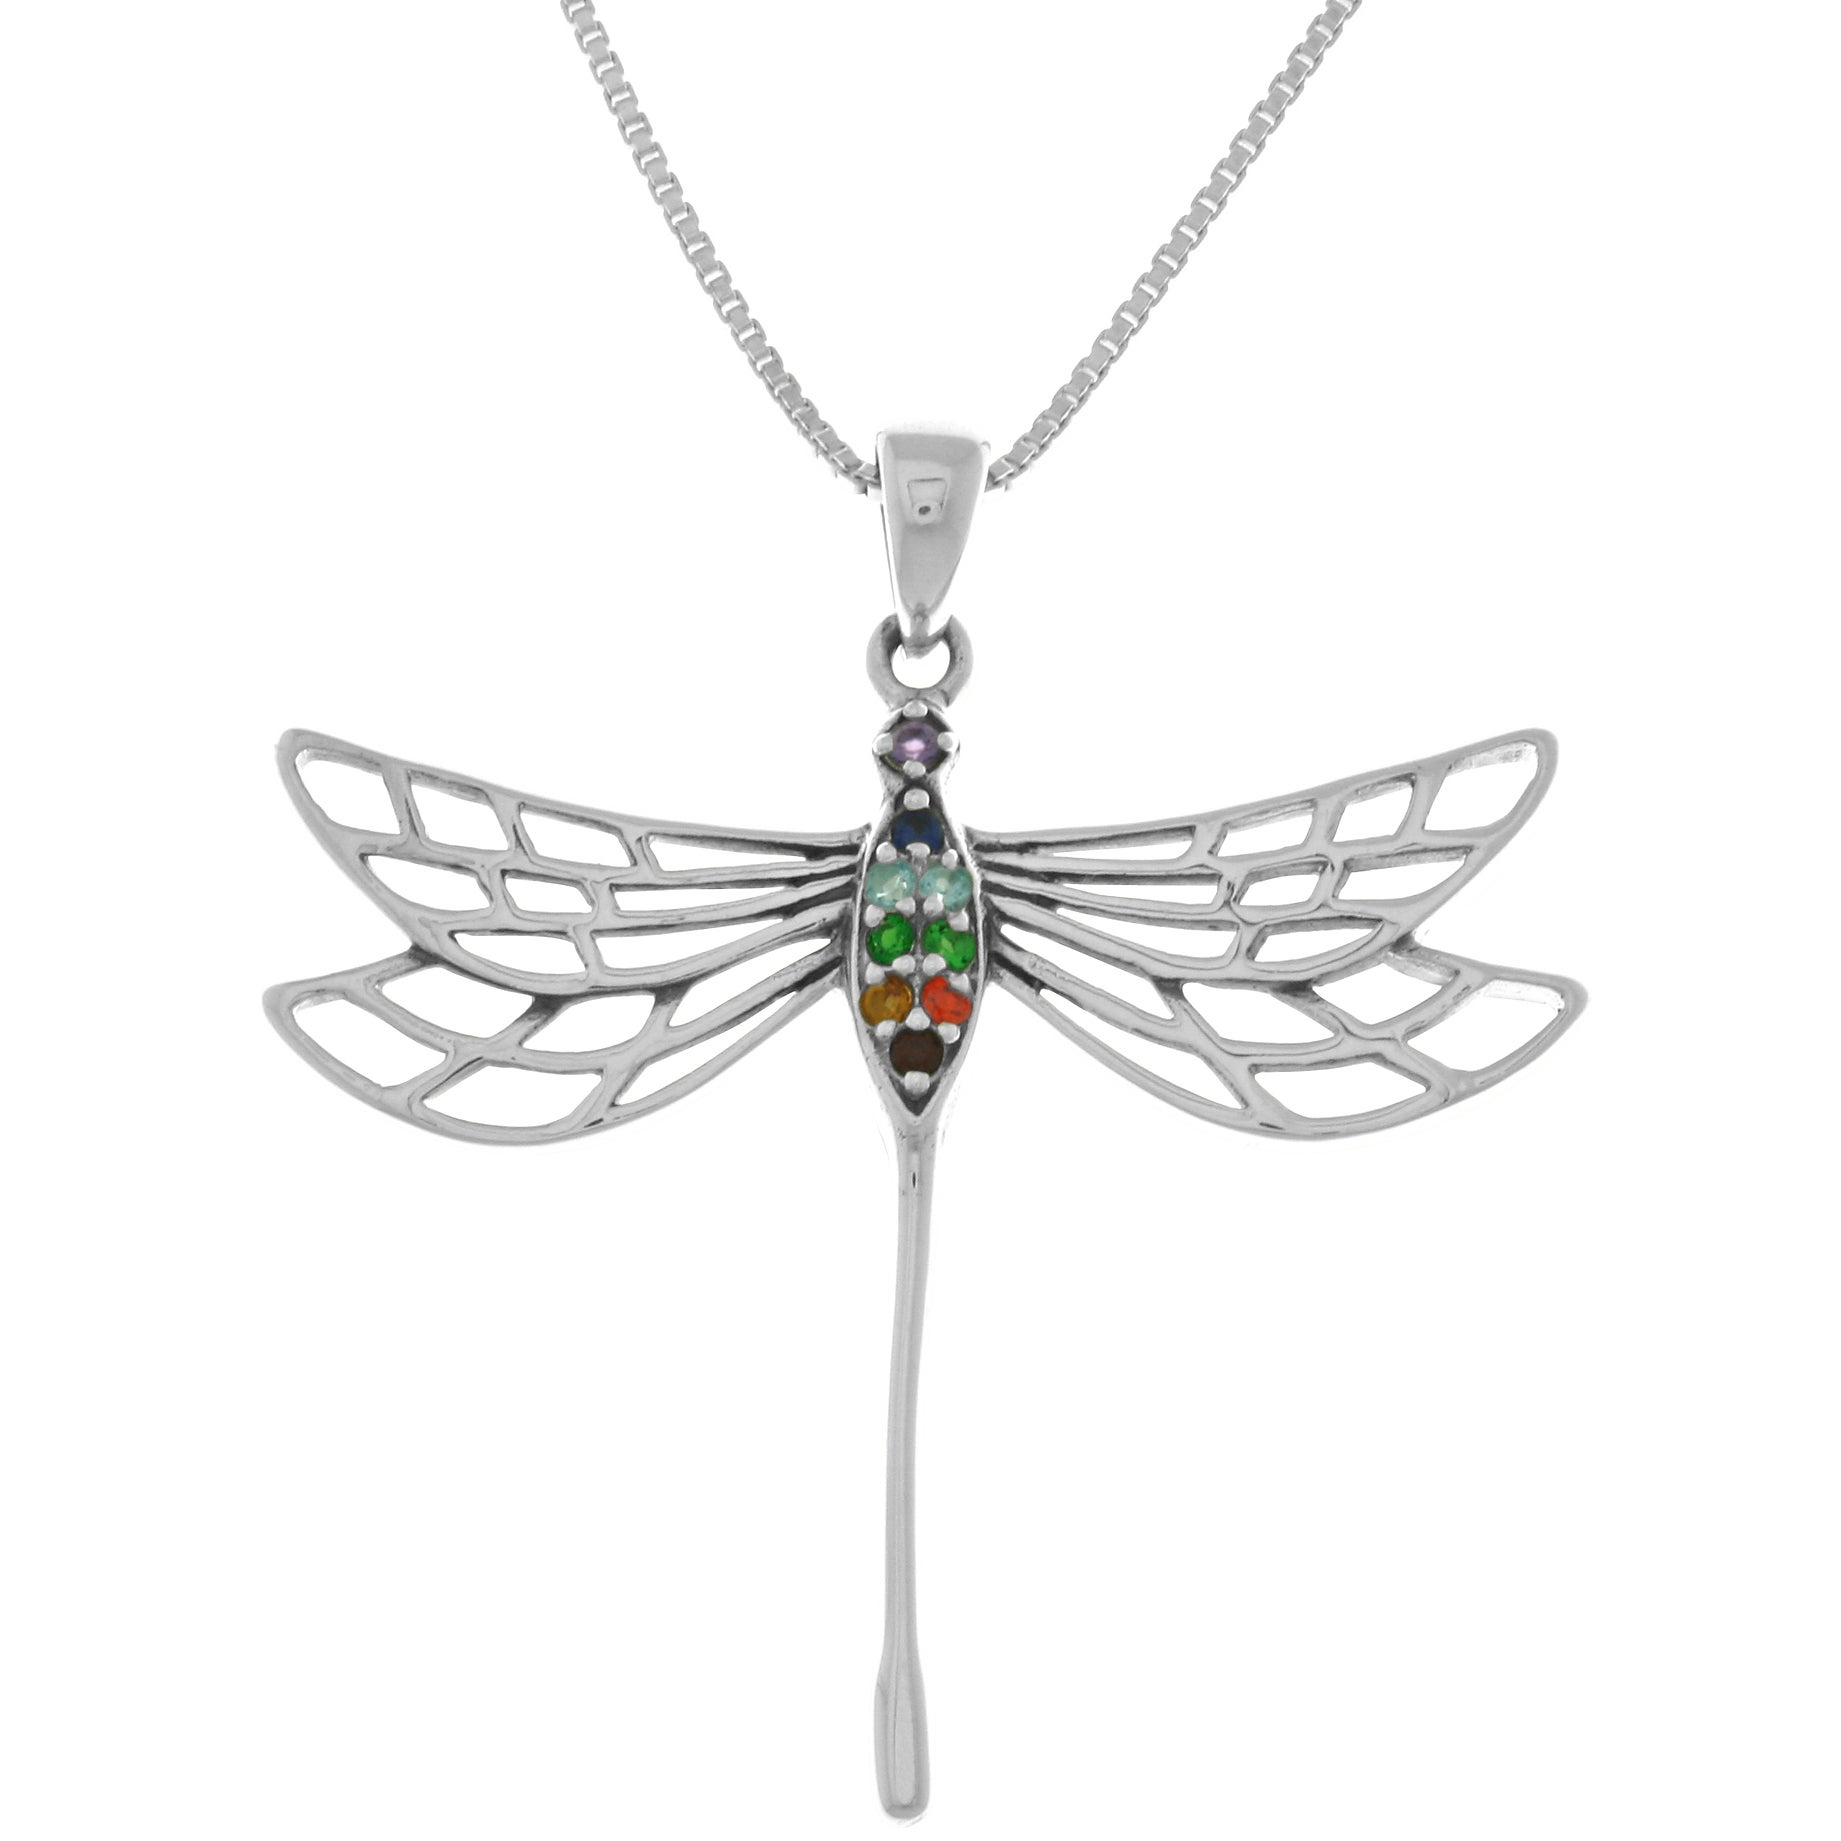 online c from nz fishpond jewellery original co necklace buy necklaces q dragonfly